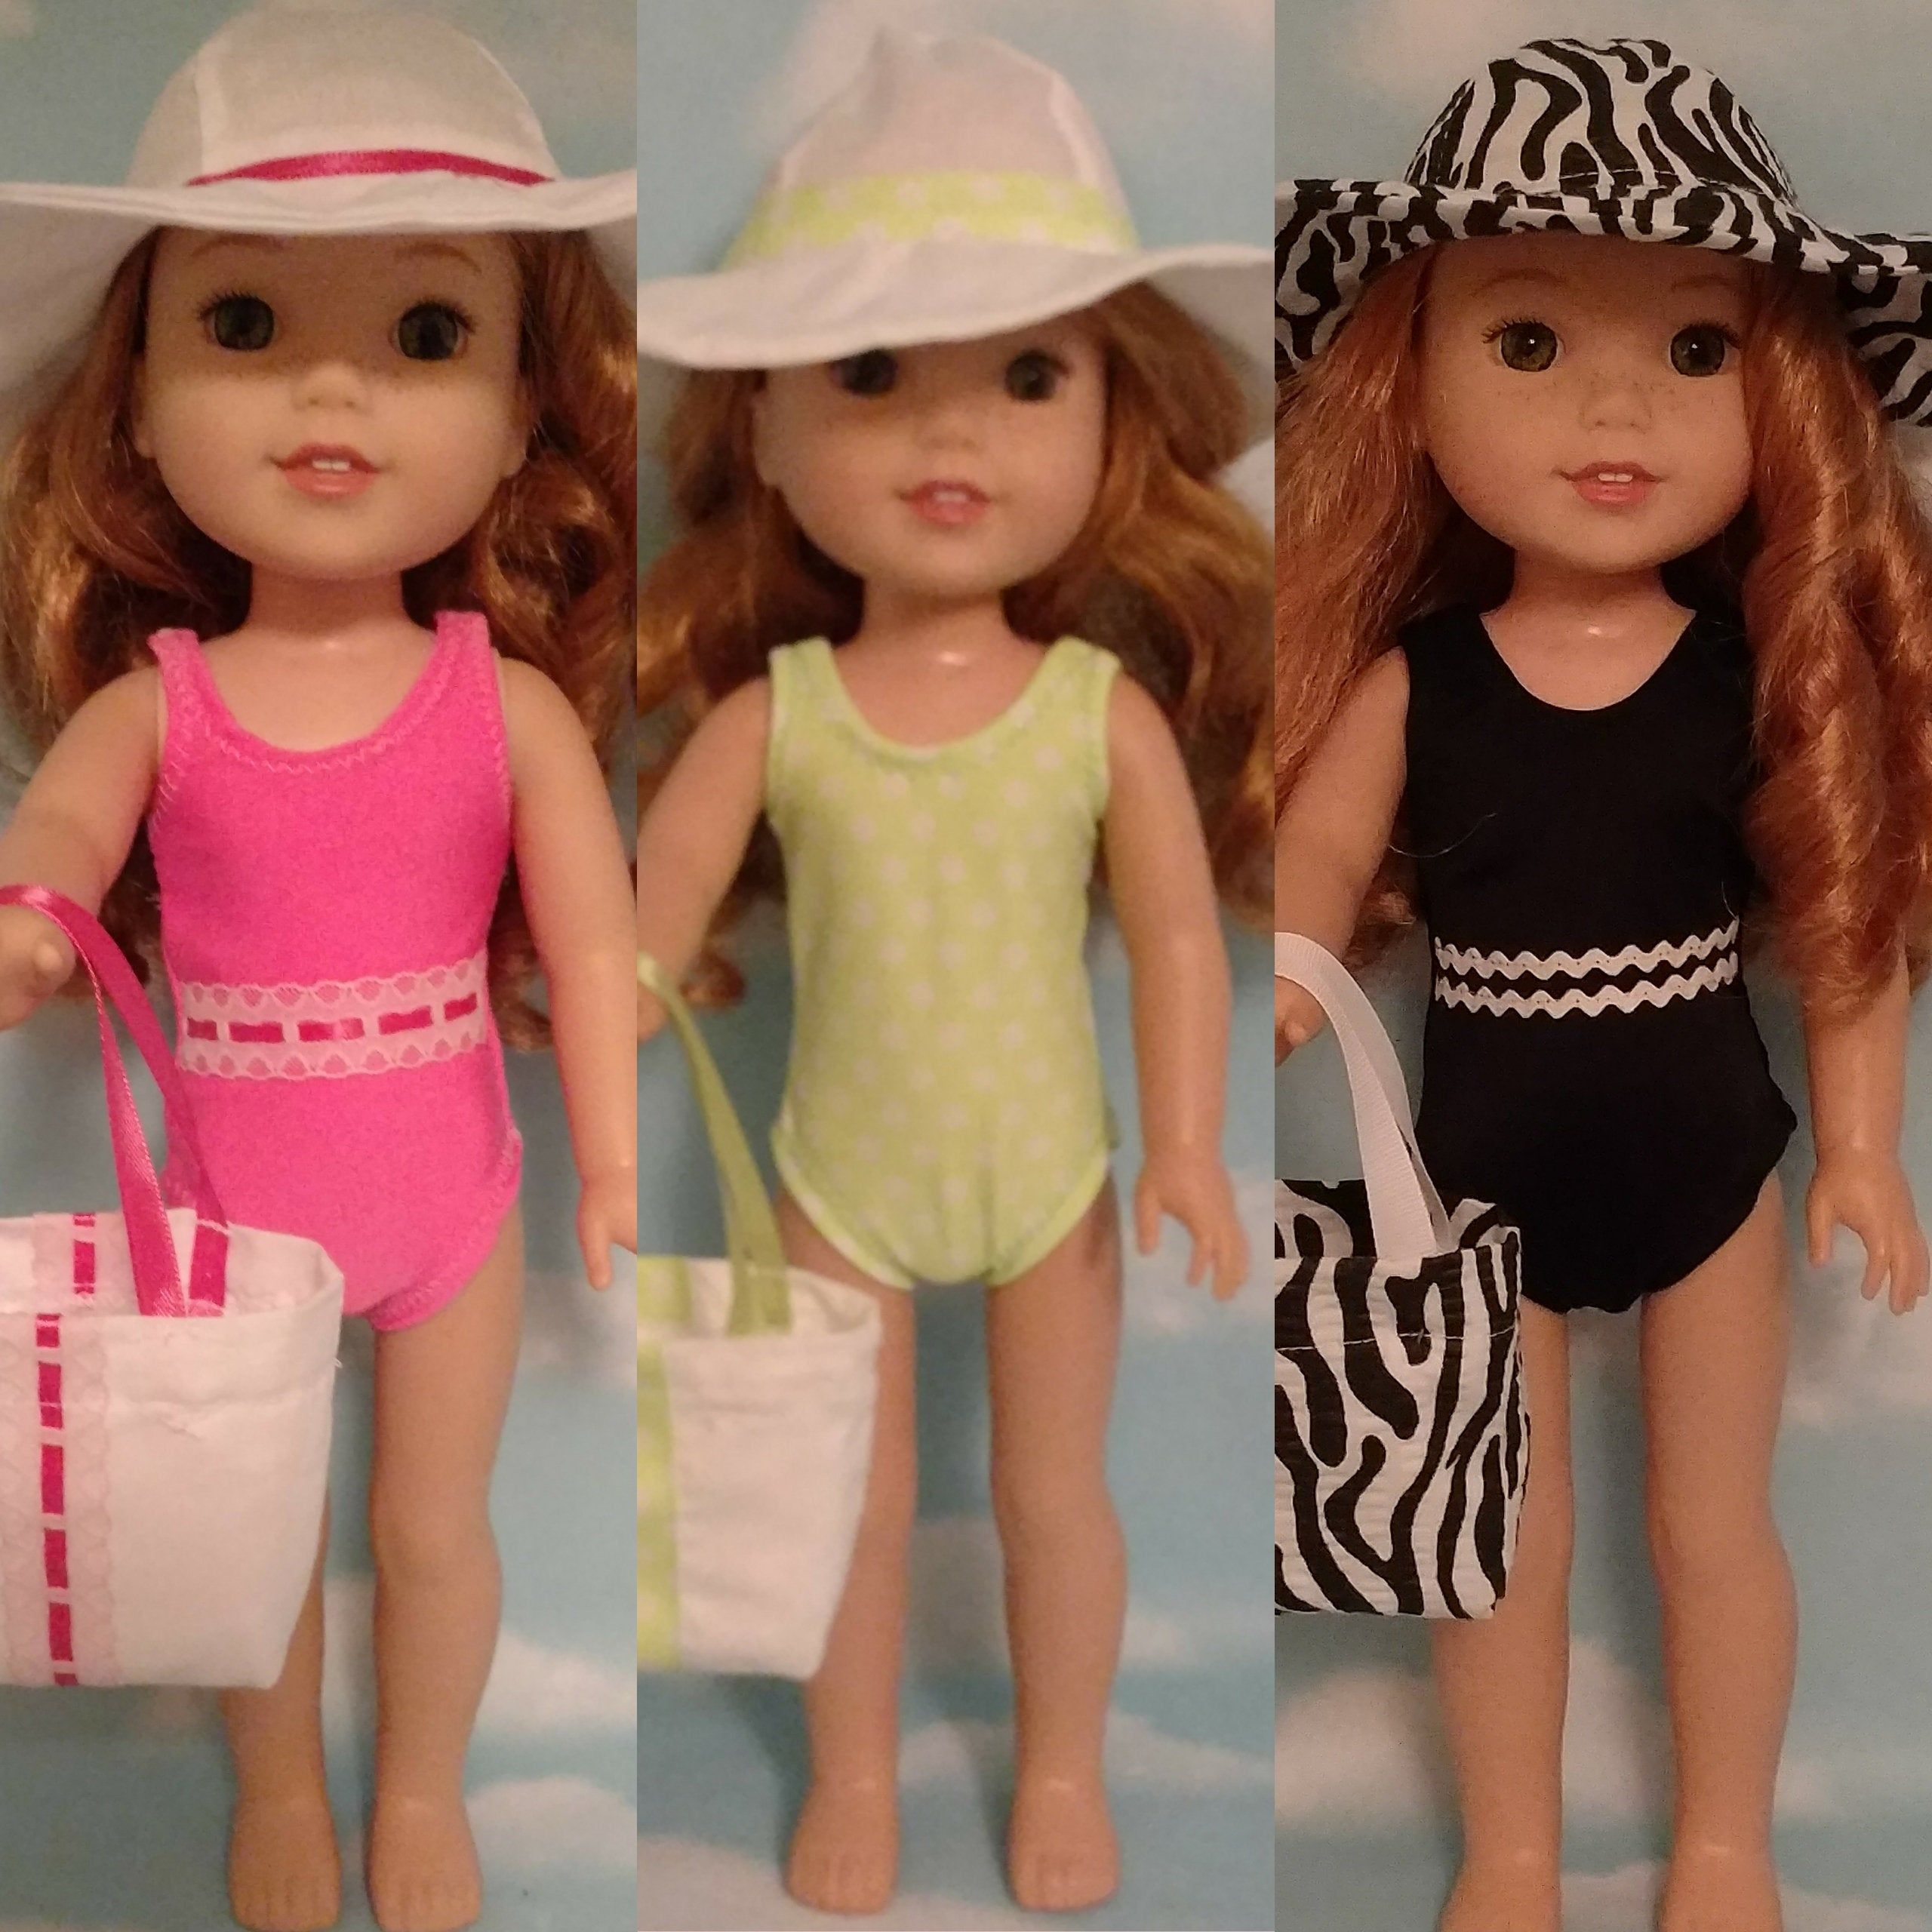 14.5inch Fashion Doll Summer Outfits Swimsuit Swimwear for Wellie Wishers